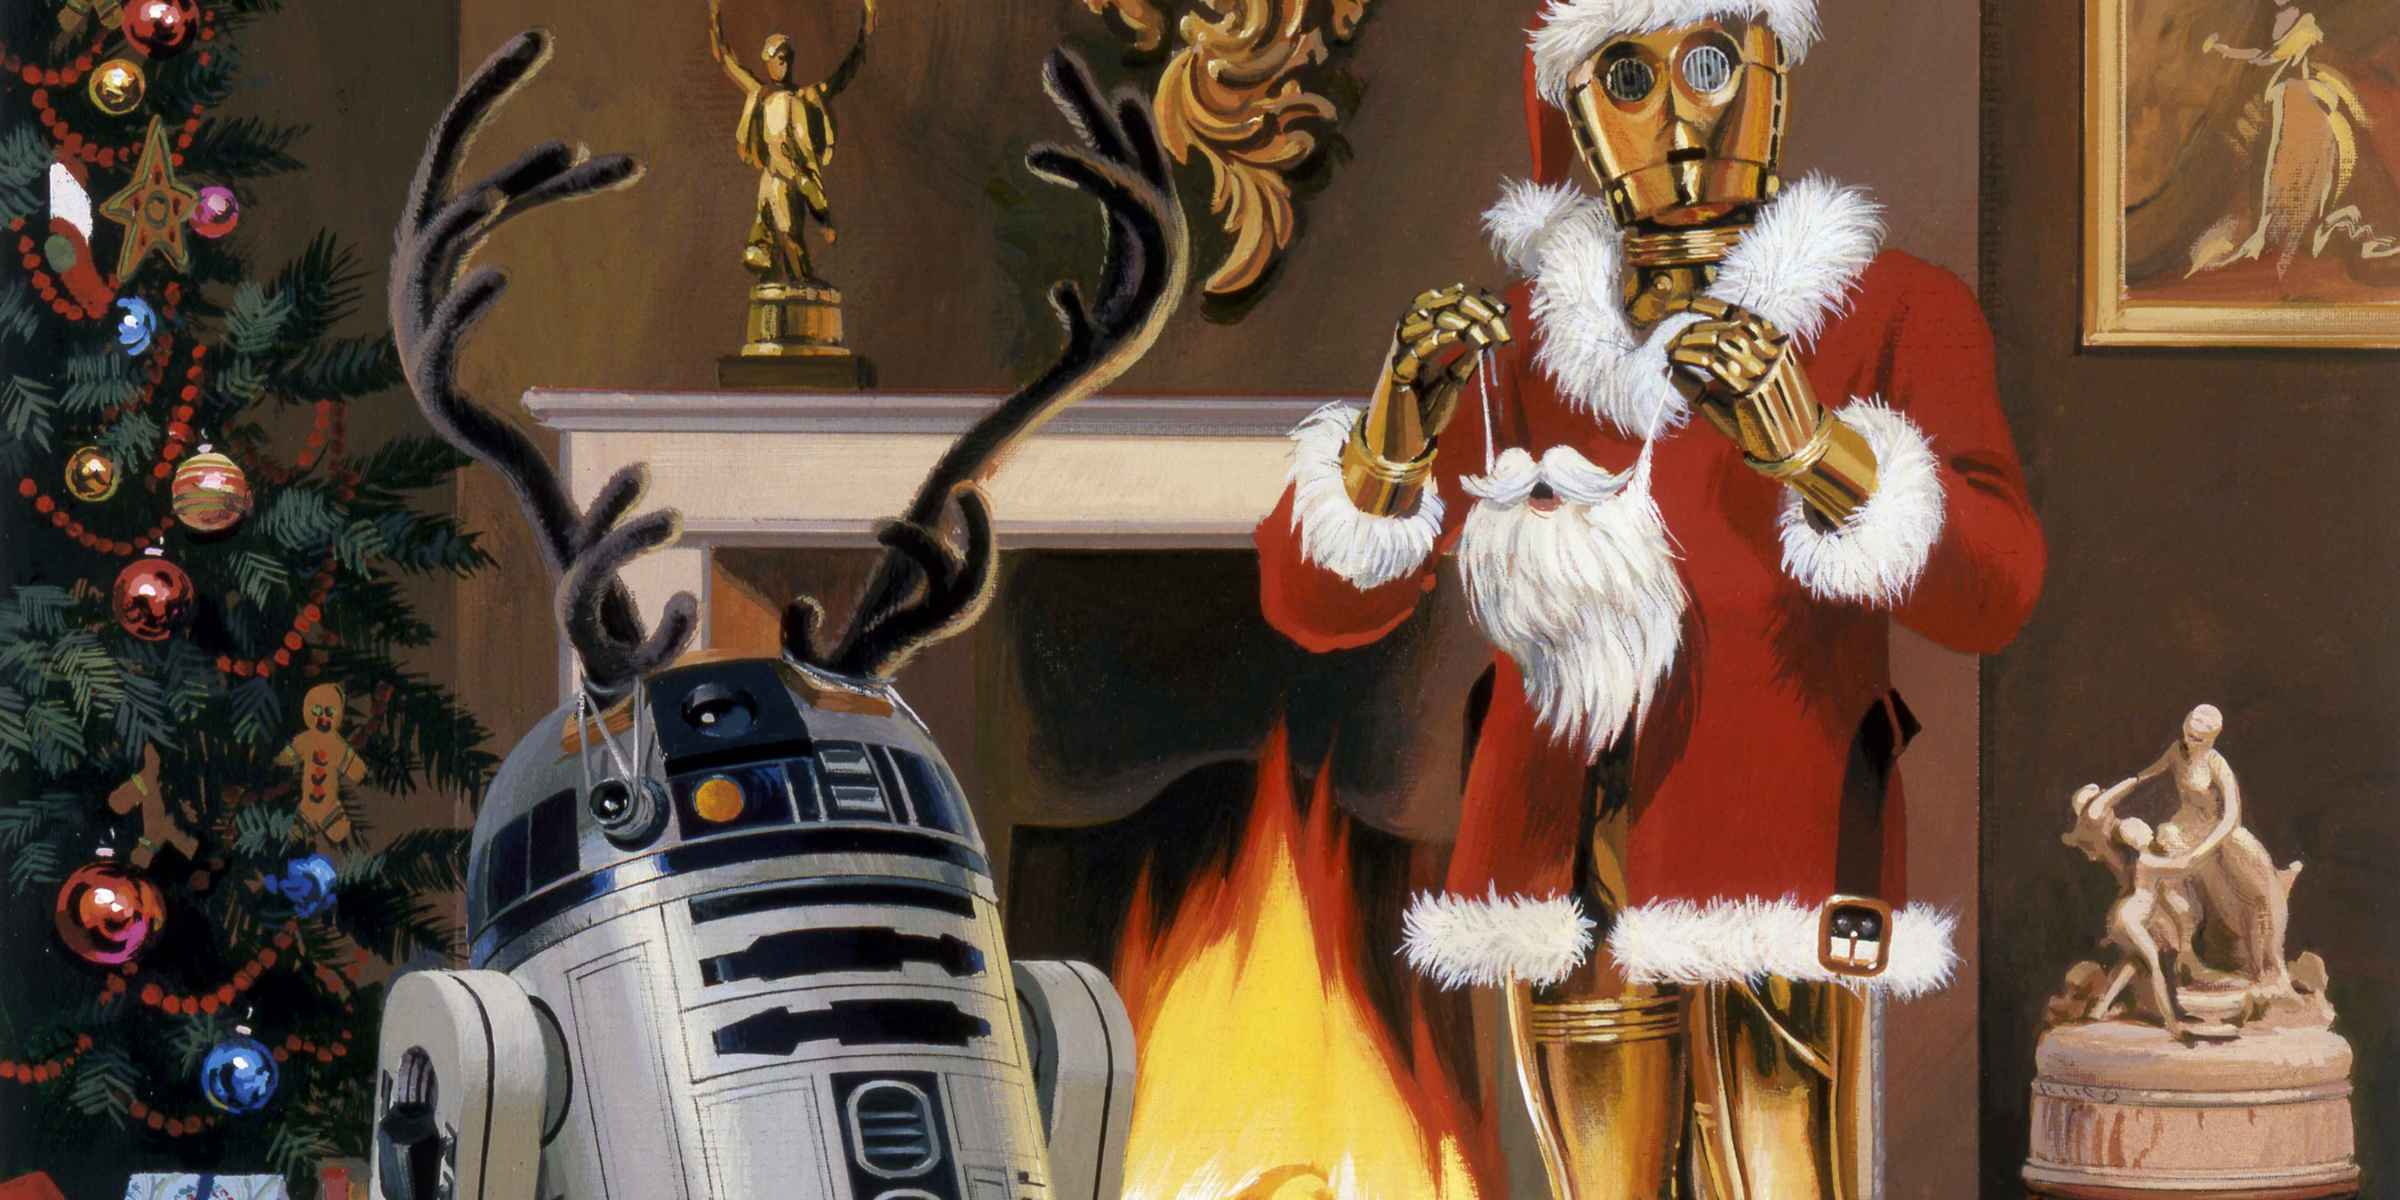 R2-D2 and C-3PO Christmas card